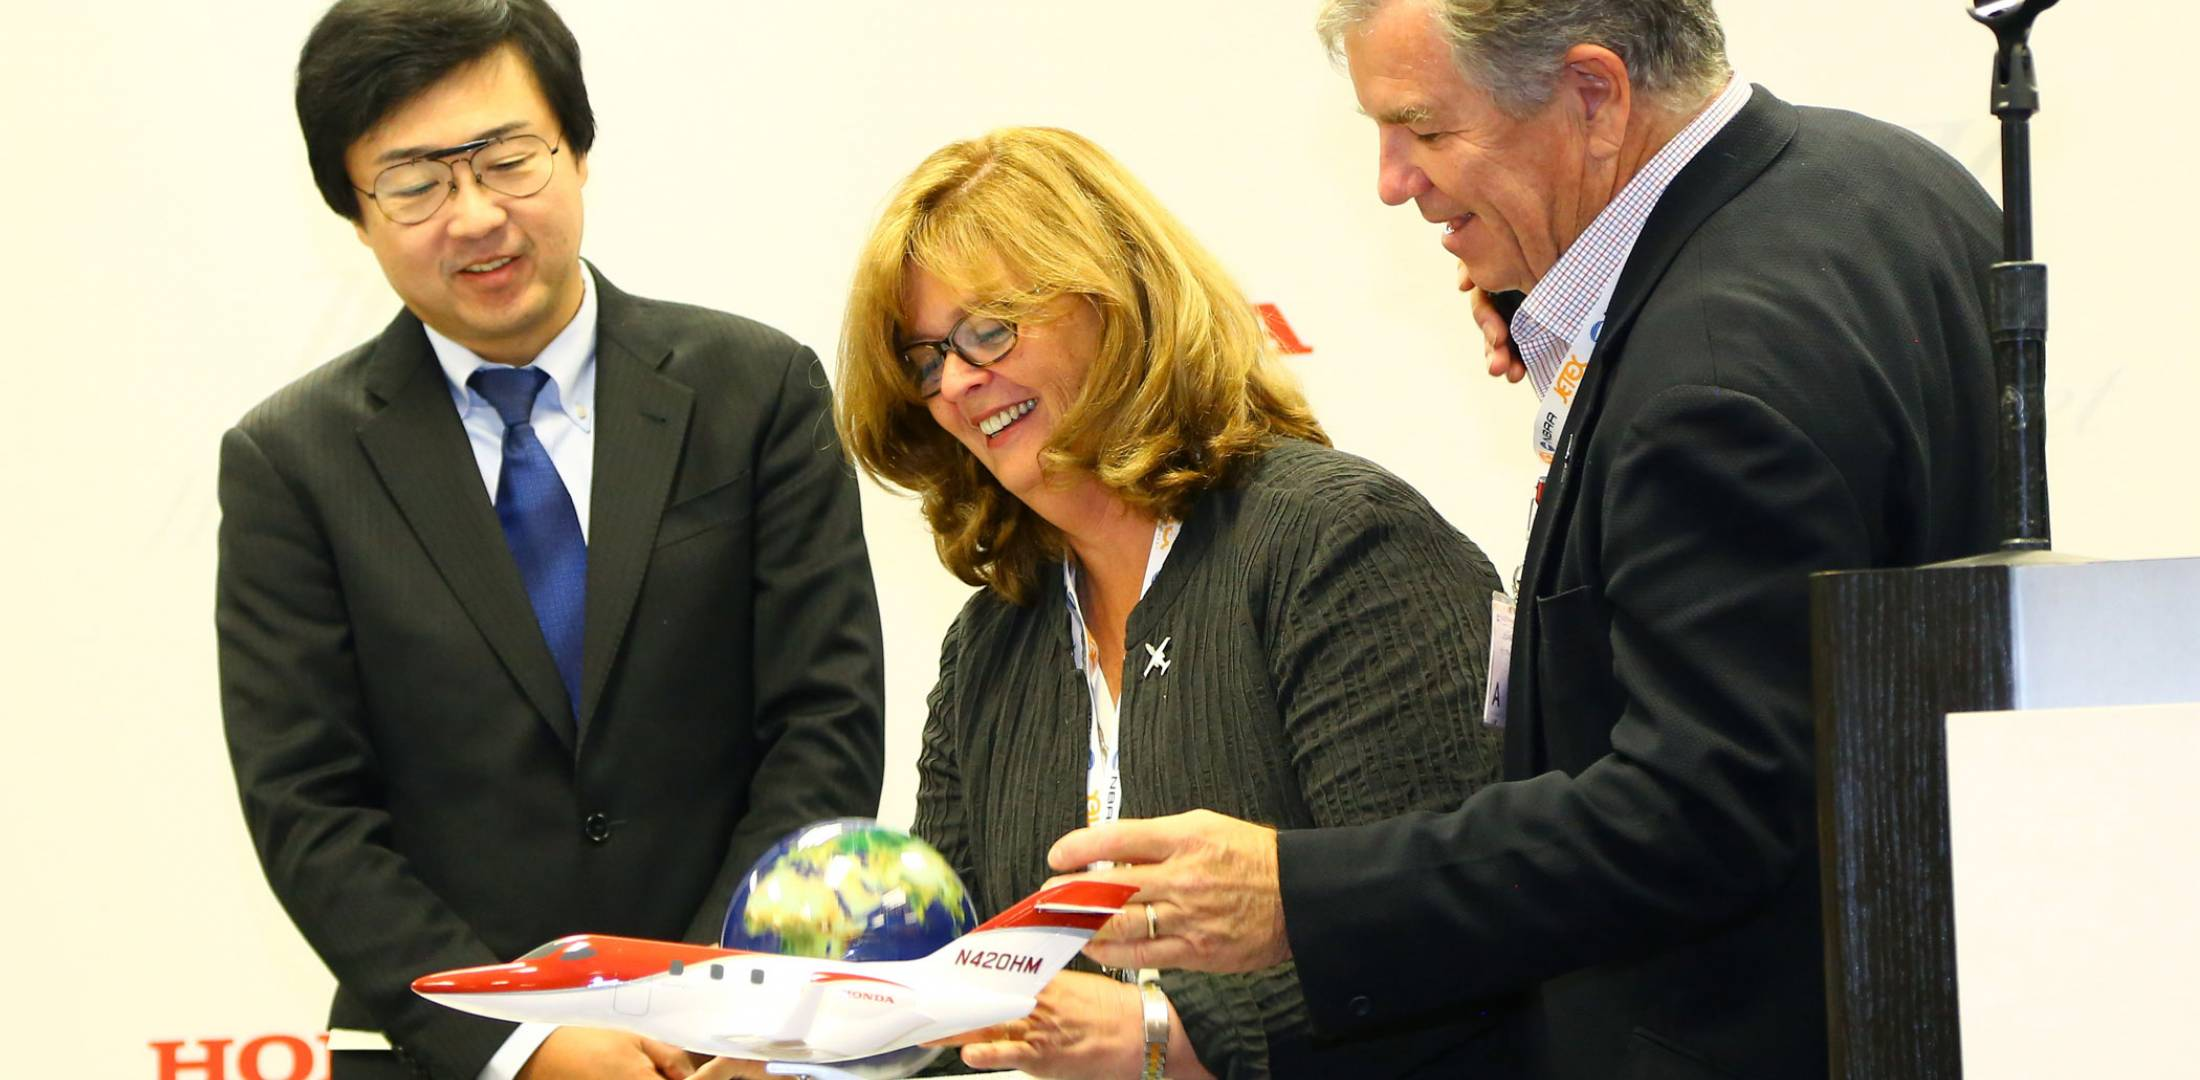 """Honda Aircraft founding president and CEO Michimasa Fujino, left, helps hoteliers Kim, center, and Julian MacQueen celebrate the completion of their """"Around the World in 80 Stays"""" tour. The couple circumnavigated the globe in their new HondaJet. PHOTO: DAVID McINTOSH"""